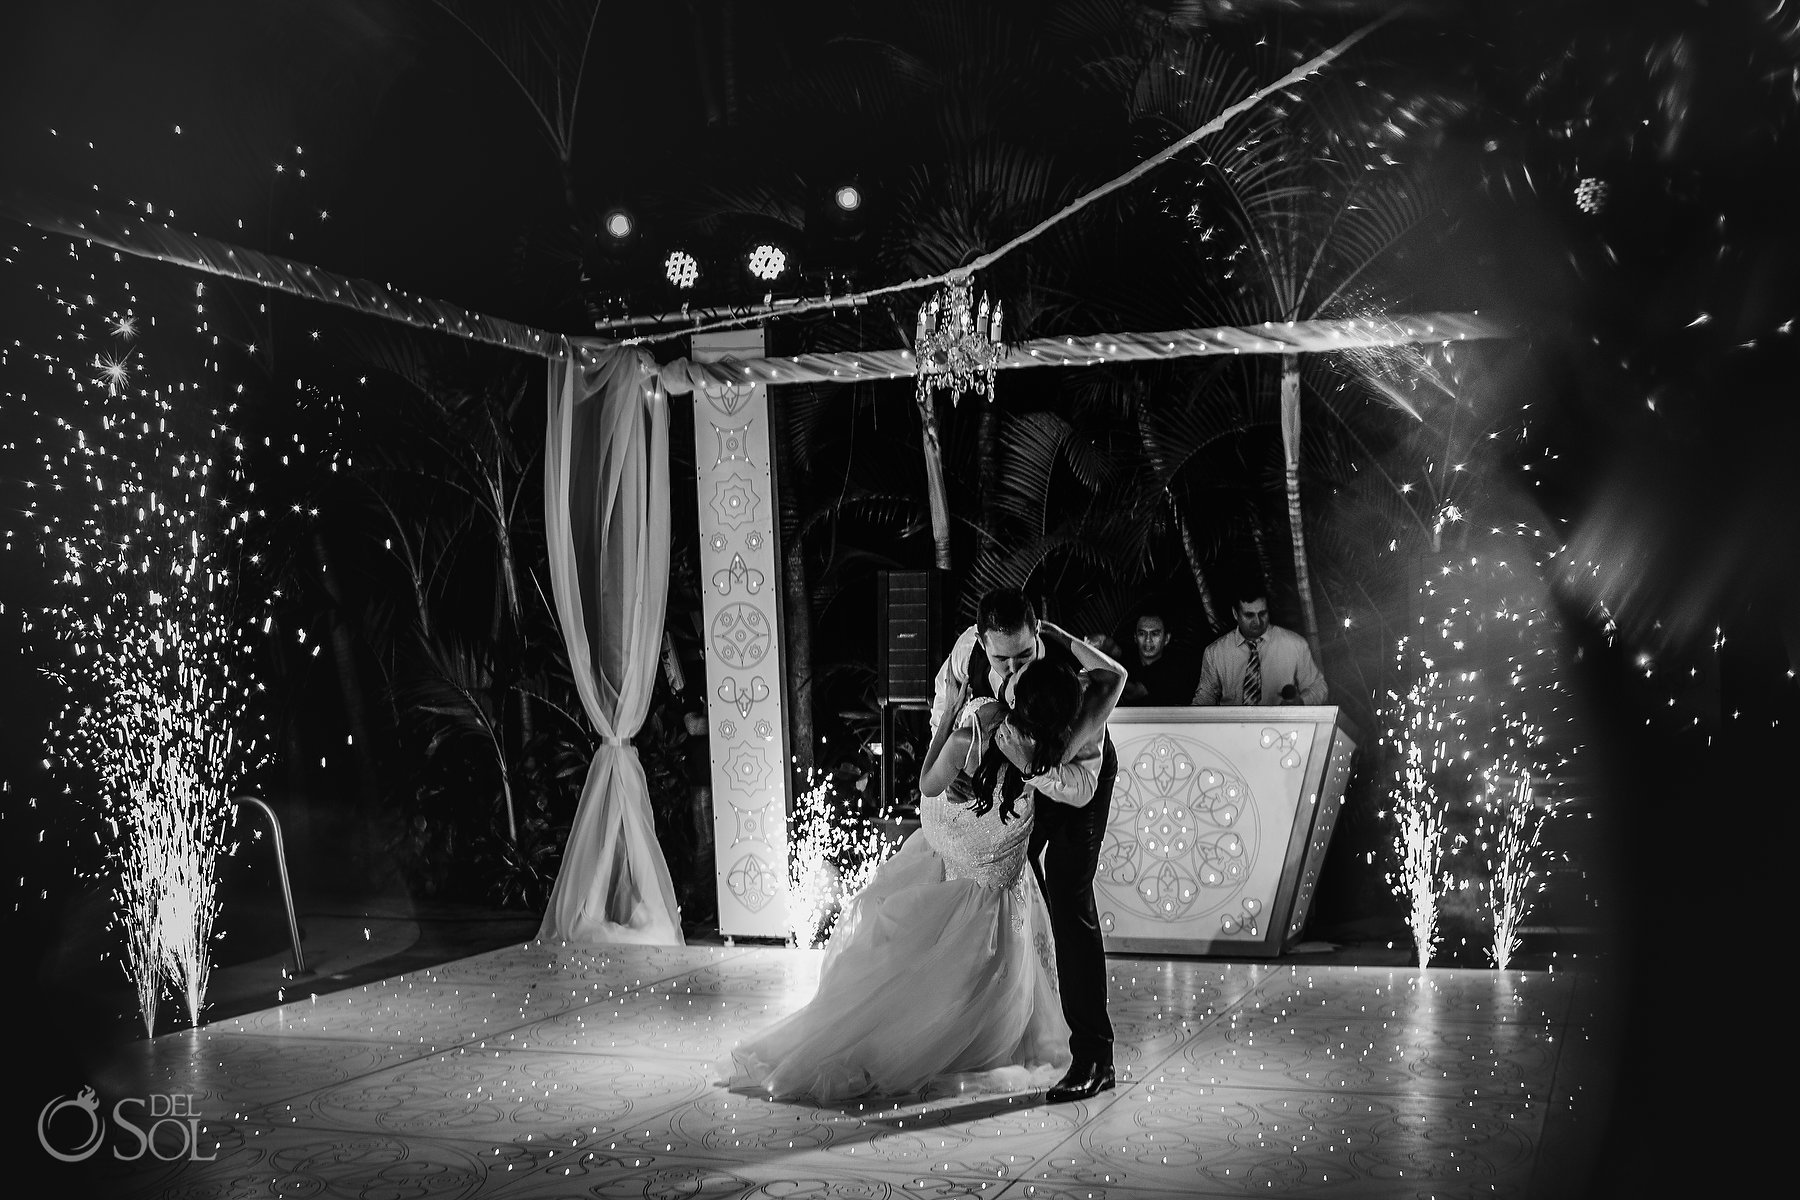 black and white Epic First dance with kiss and fireworks Hyatt Ziva Puerto Vallarta Wedding